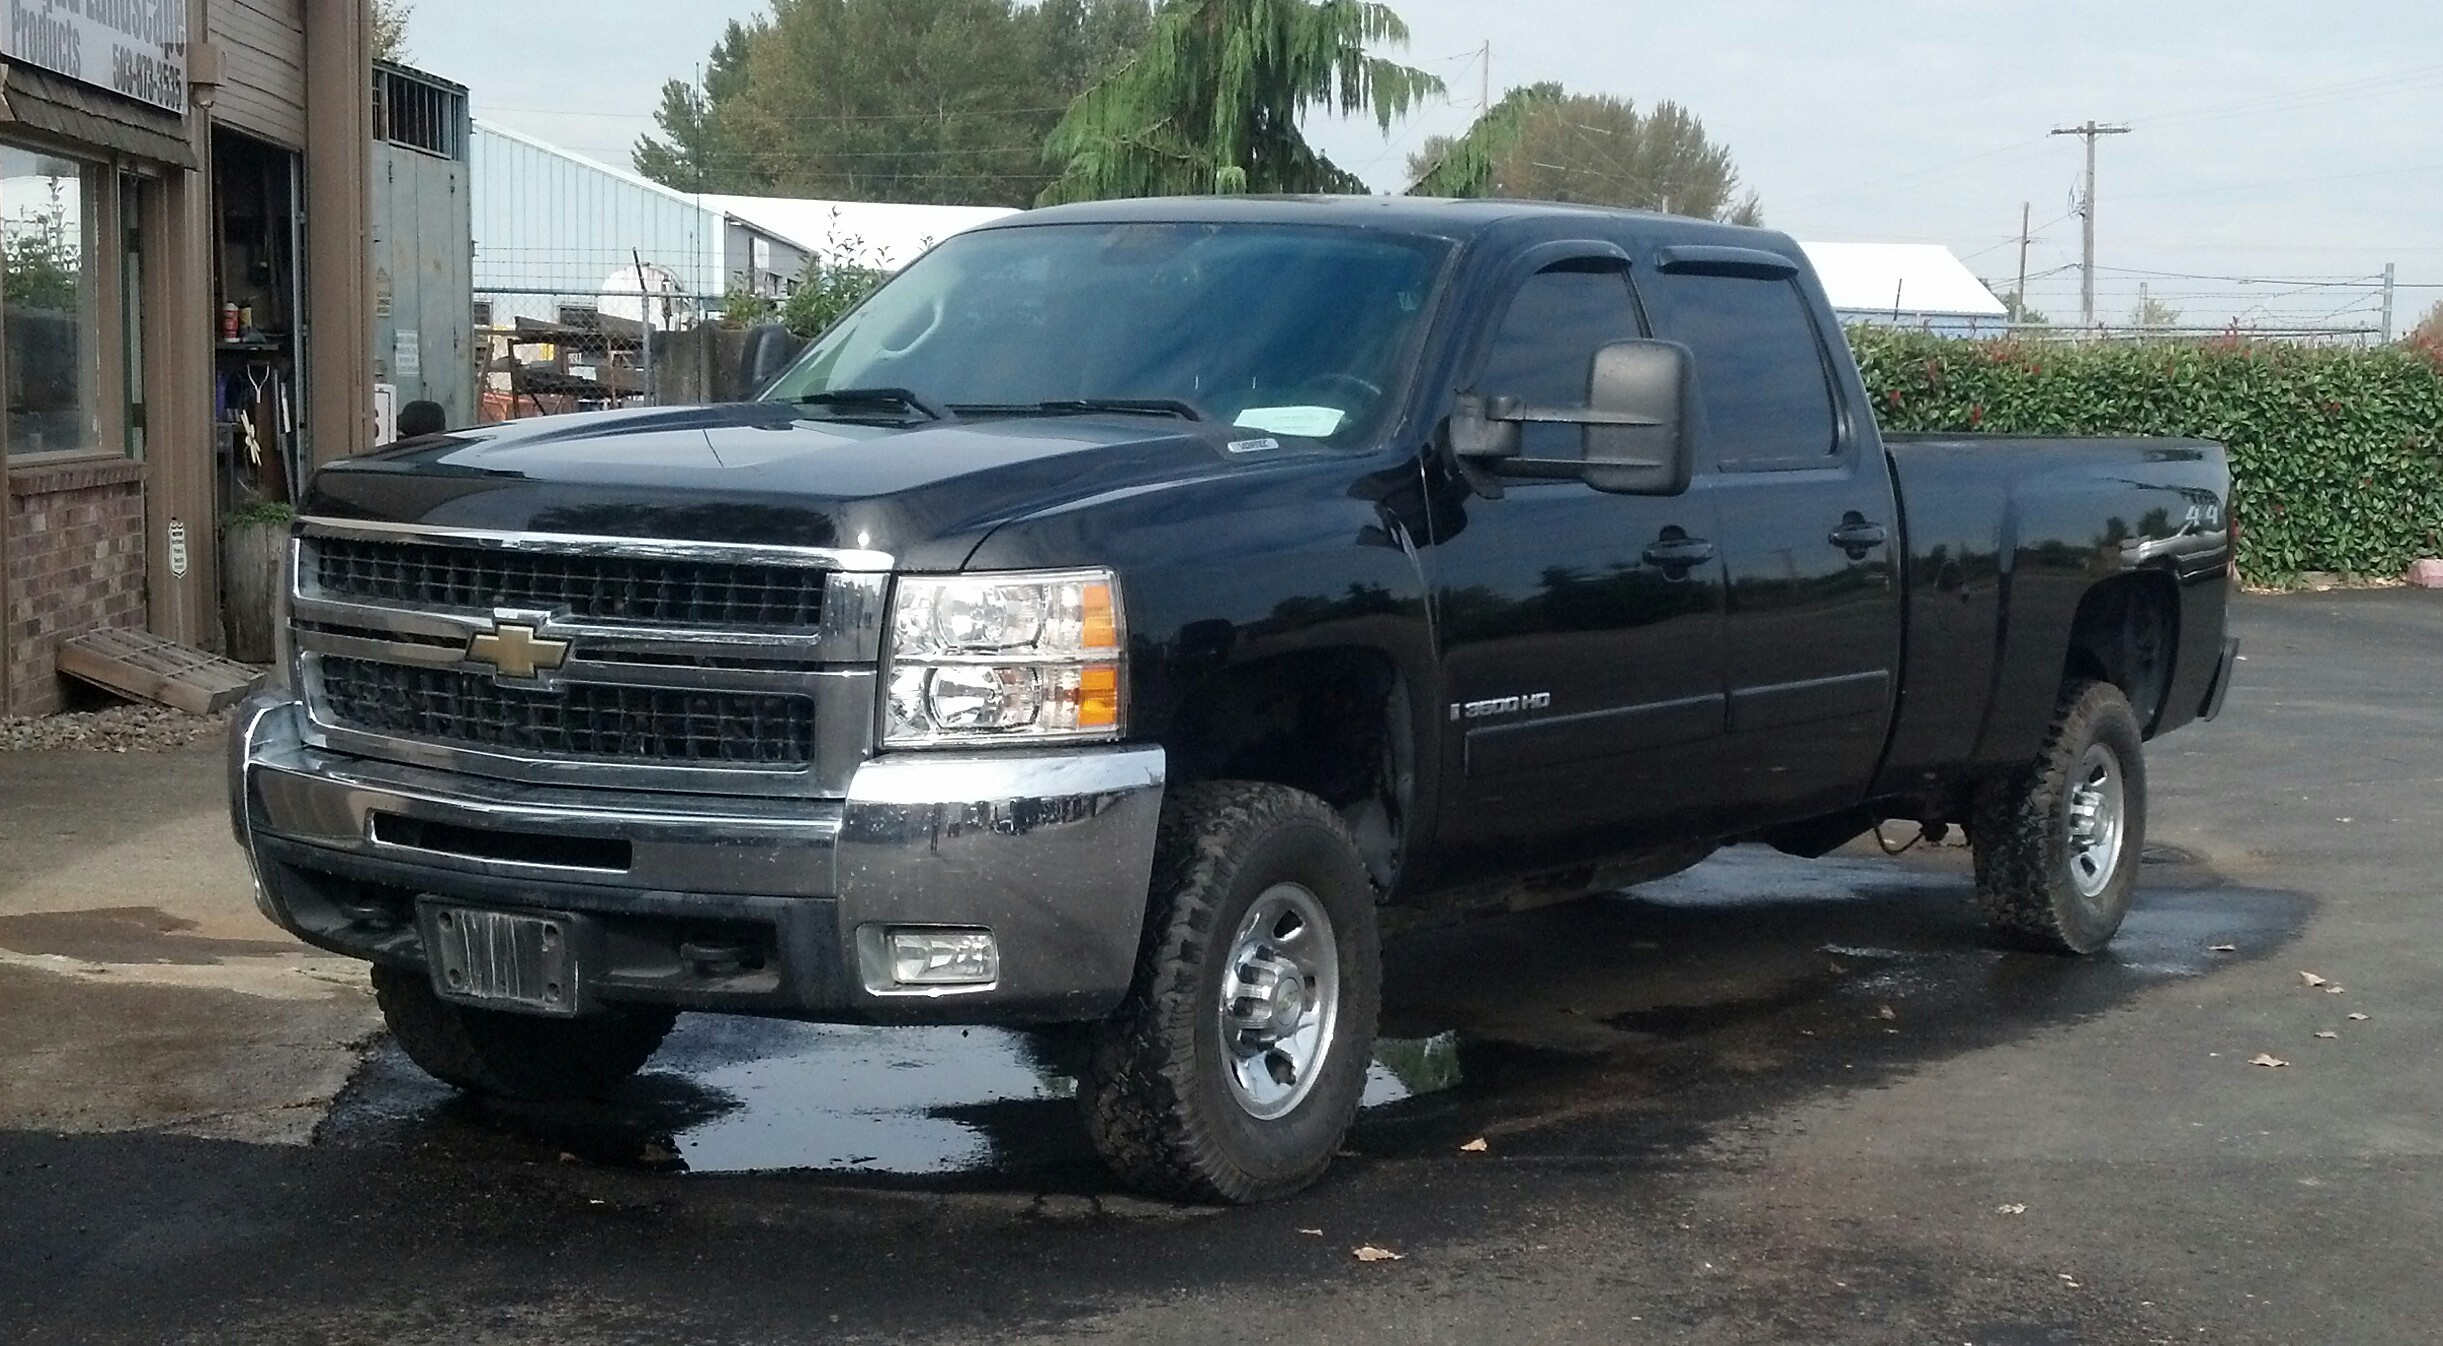 2007 Chevrolet Silverado 3500 HD LTZ Crew Cab photo - 1